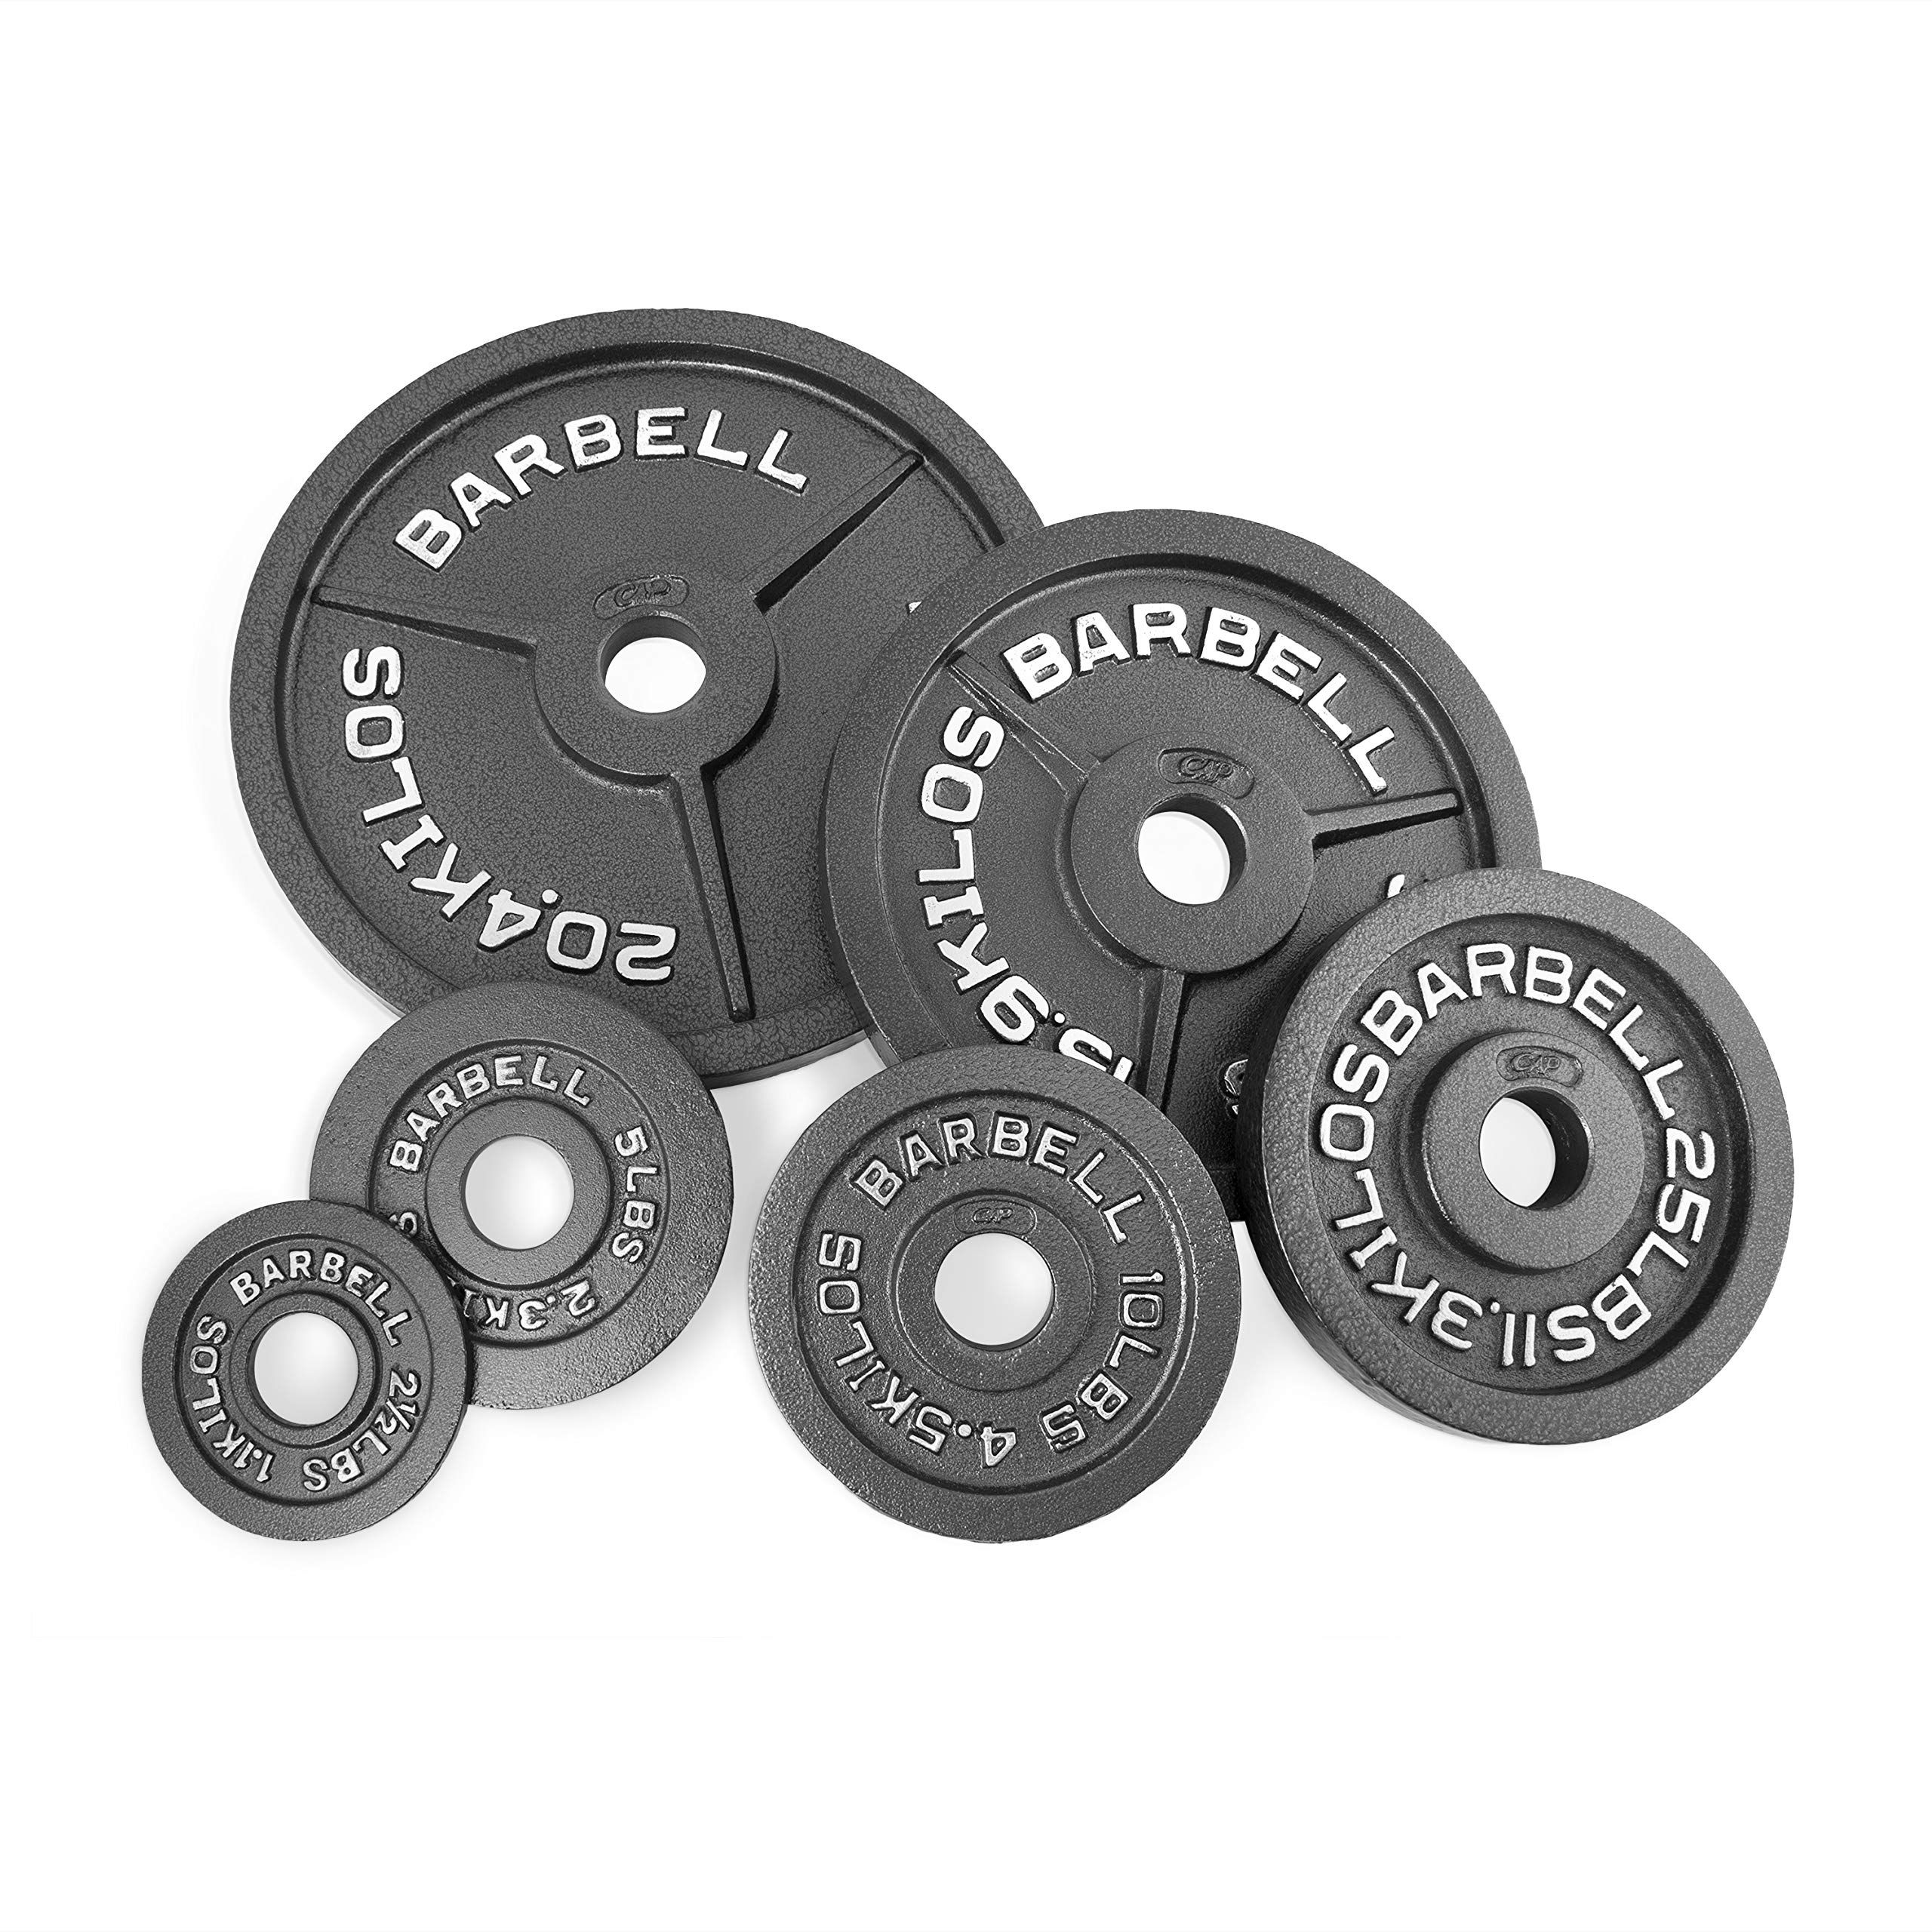 Cap barbell 35 lb black olympic weight plate look into